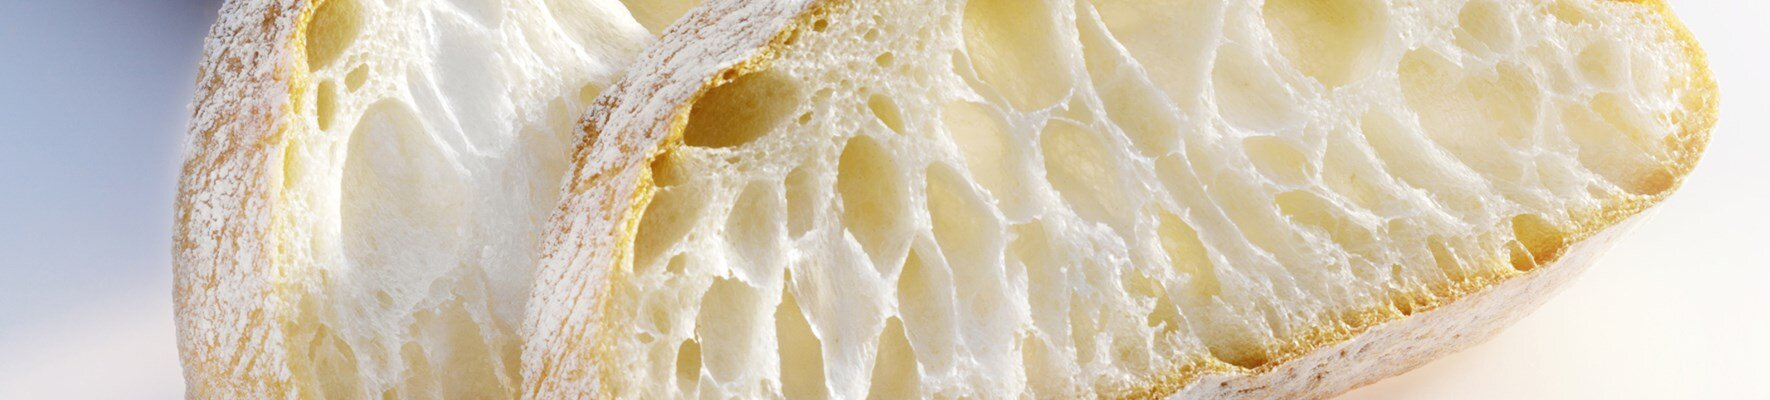 Microstructure of bread roll crumb in light and